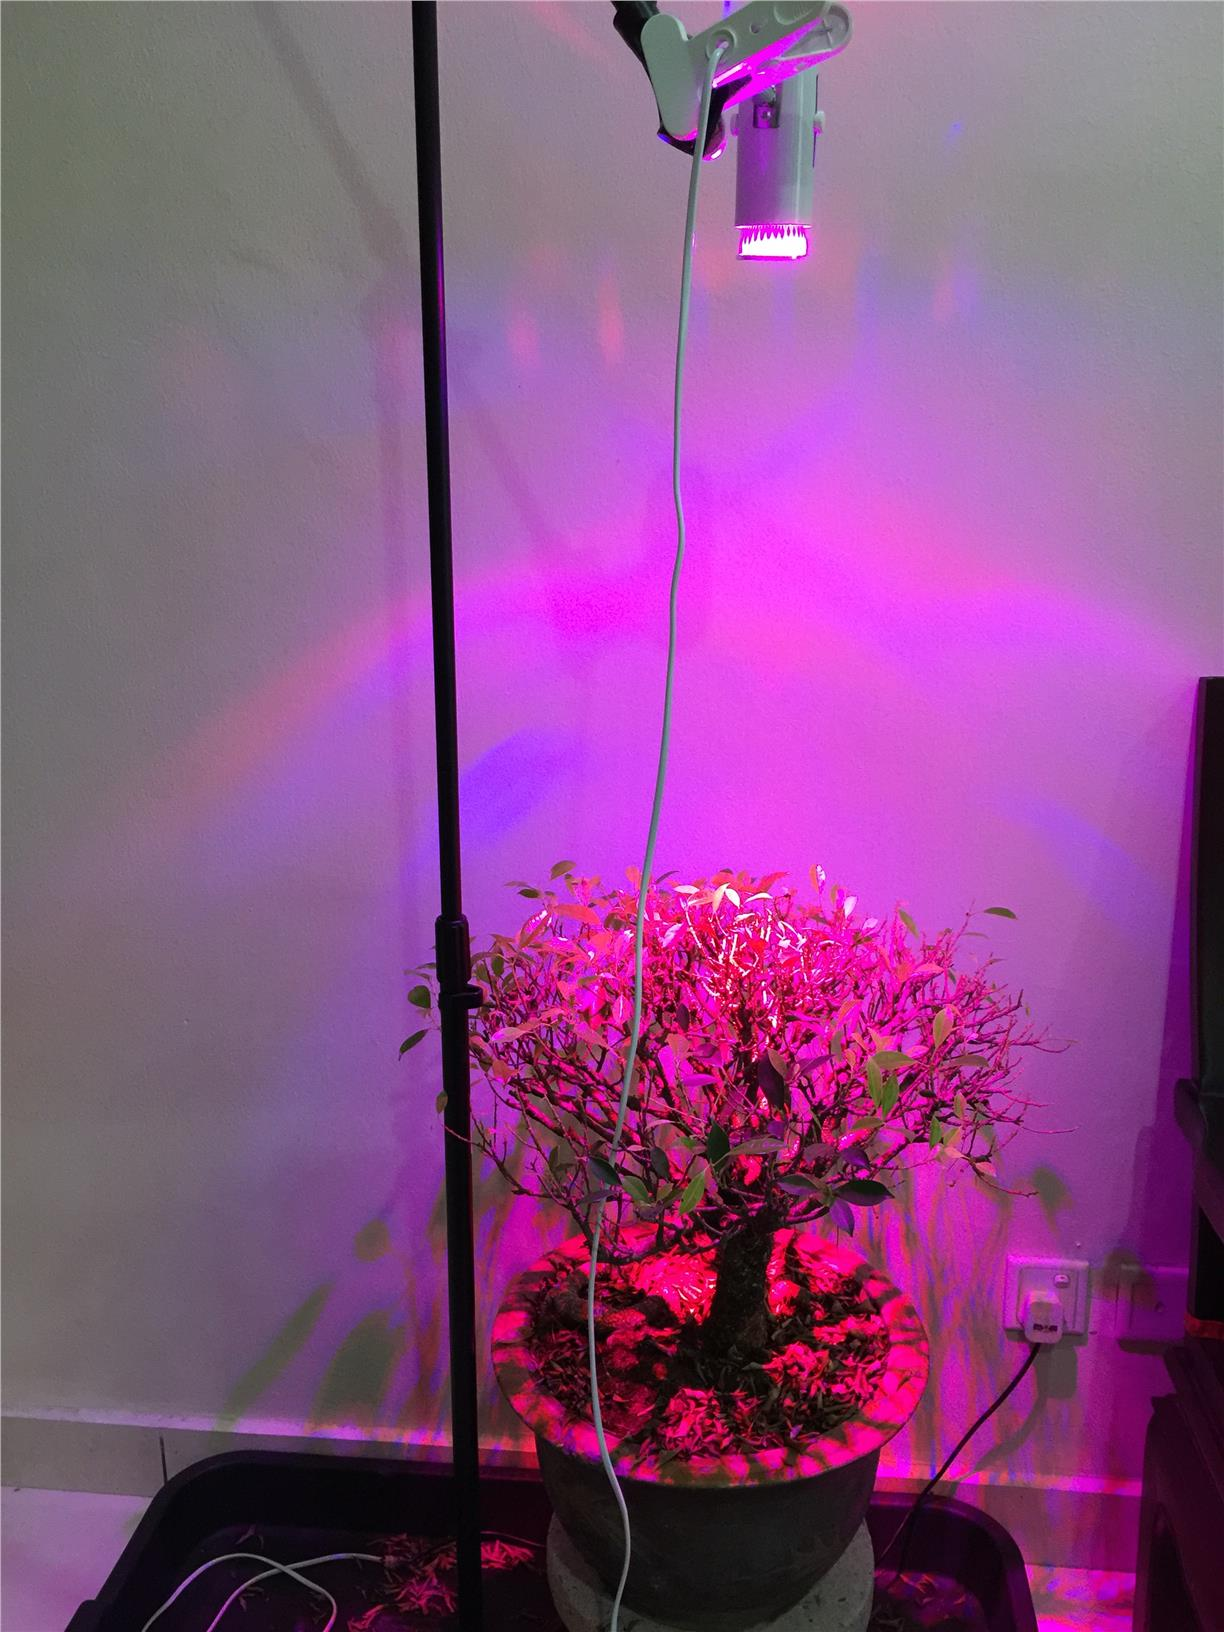 industrial high hydroponic consumption spectrum luminosity full com low led light bulb choice amazon grade dp grow plant power lighting essential